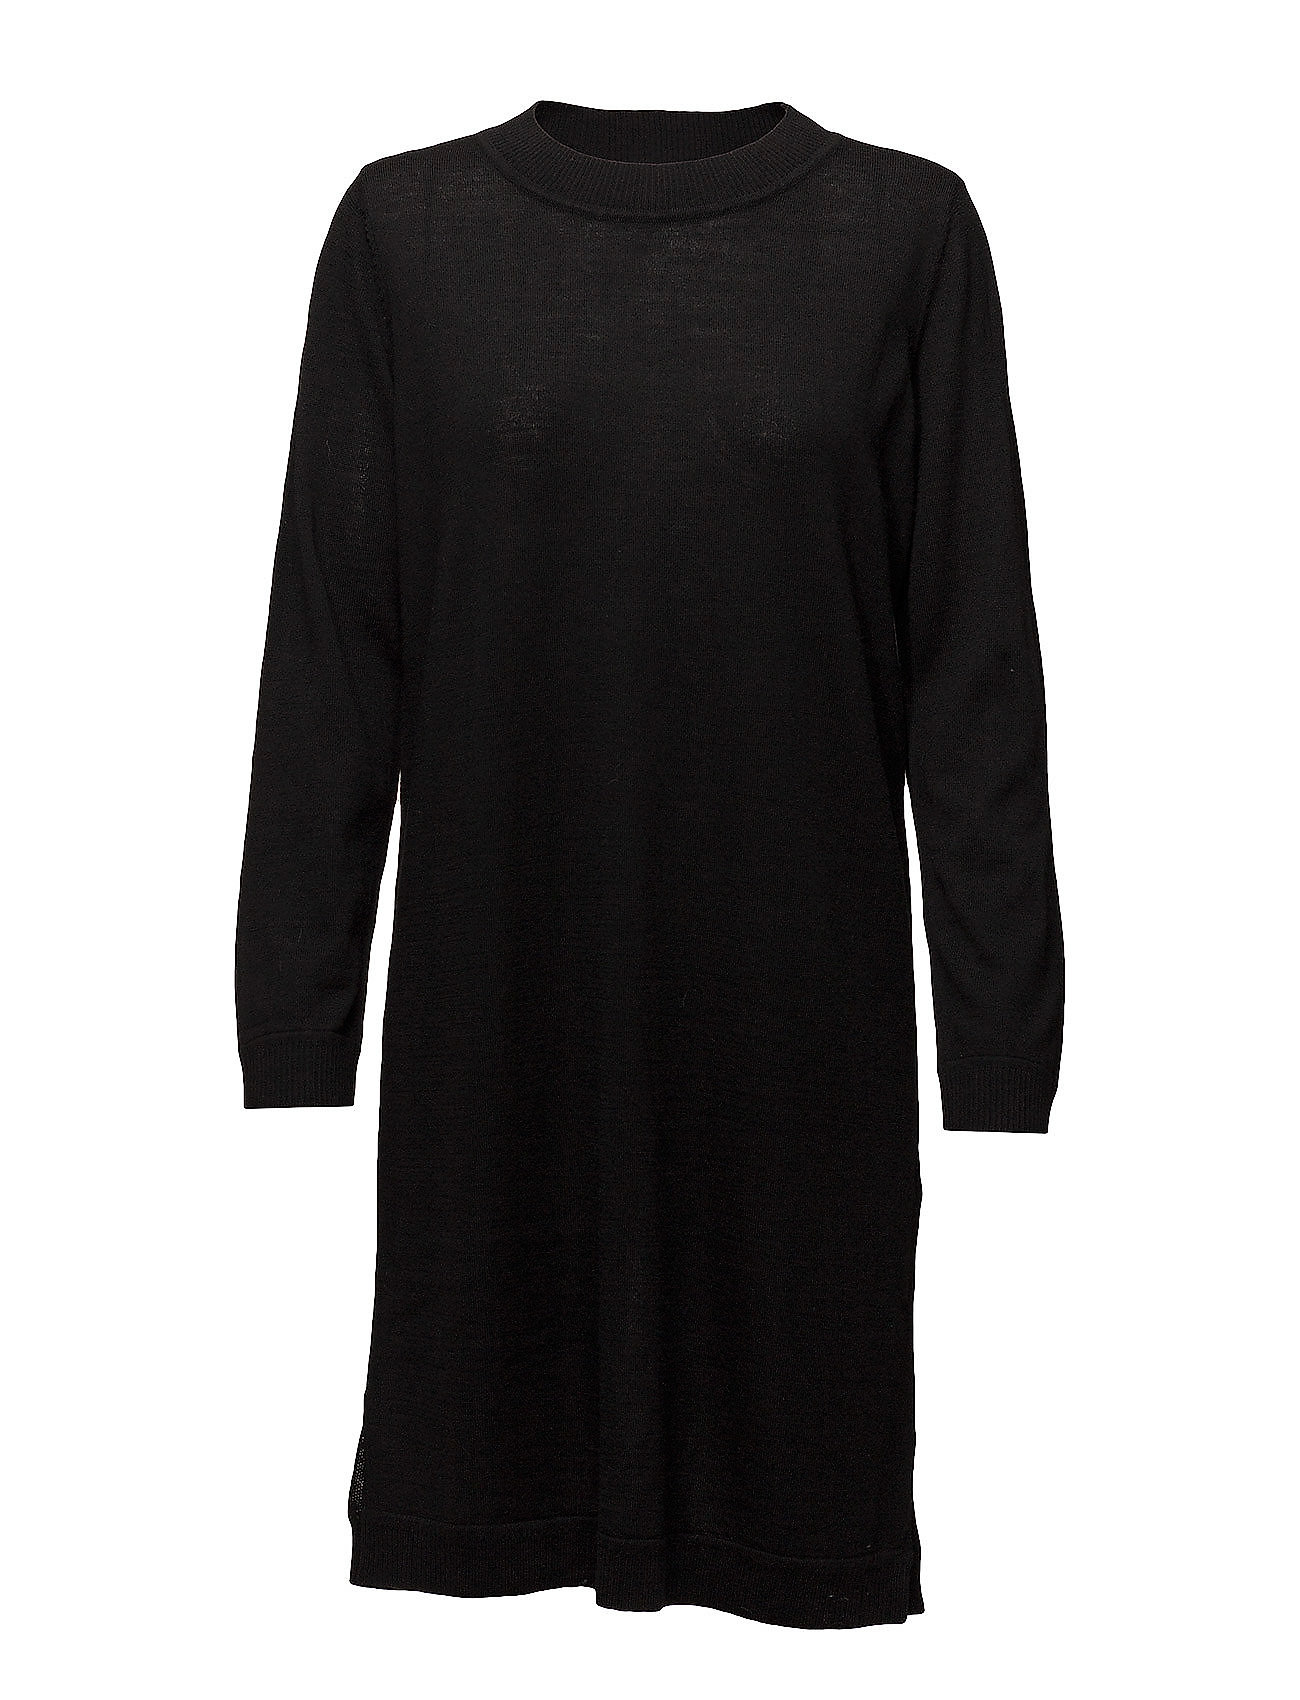 Selected Femme SFEILEEN LS KNIT O-NECK DRESS NOOS